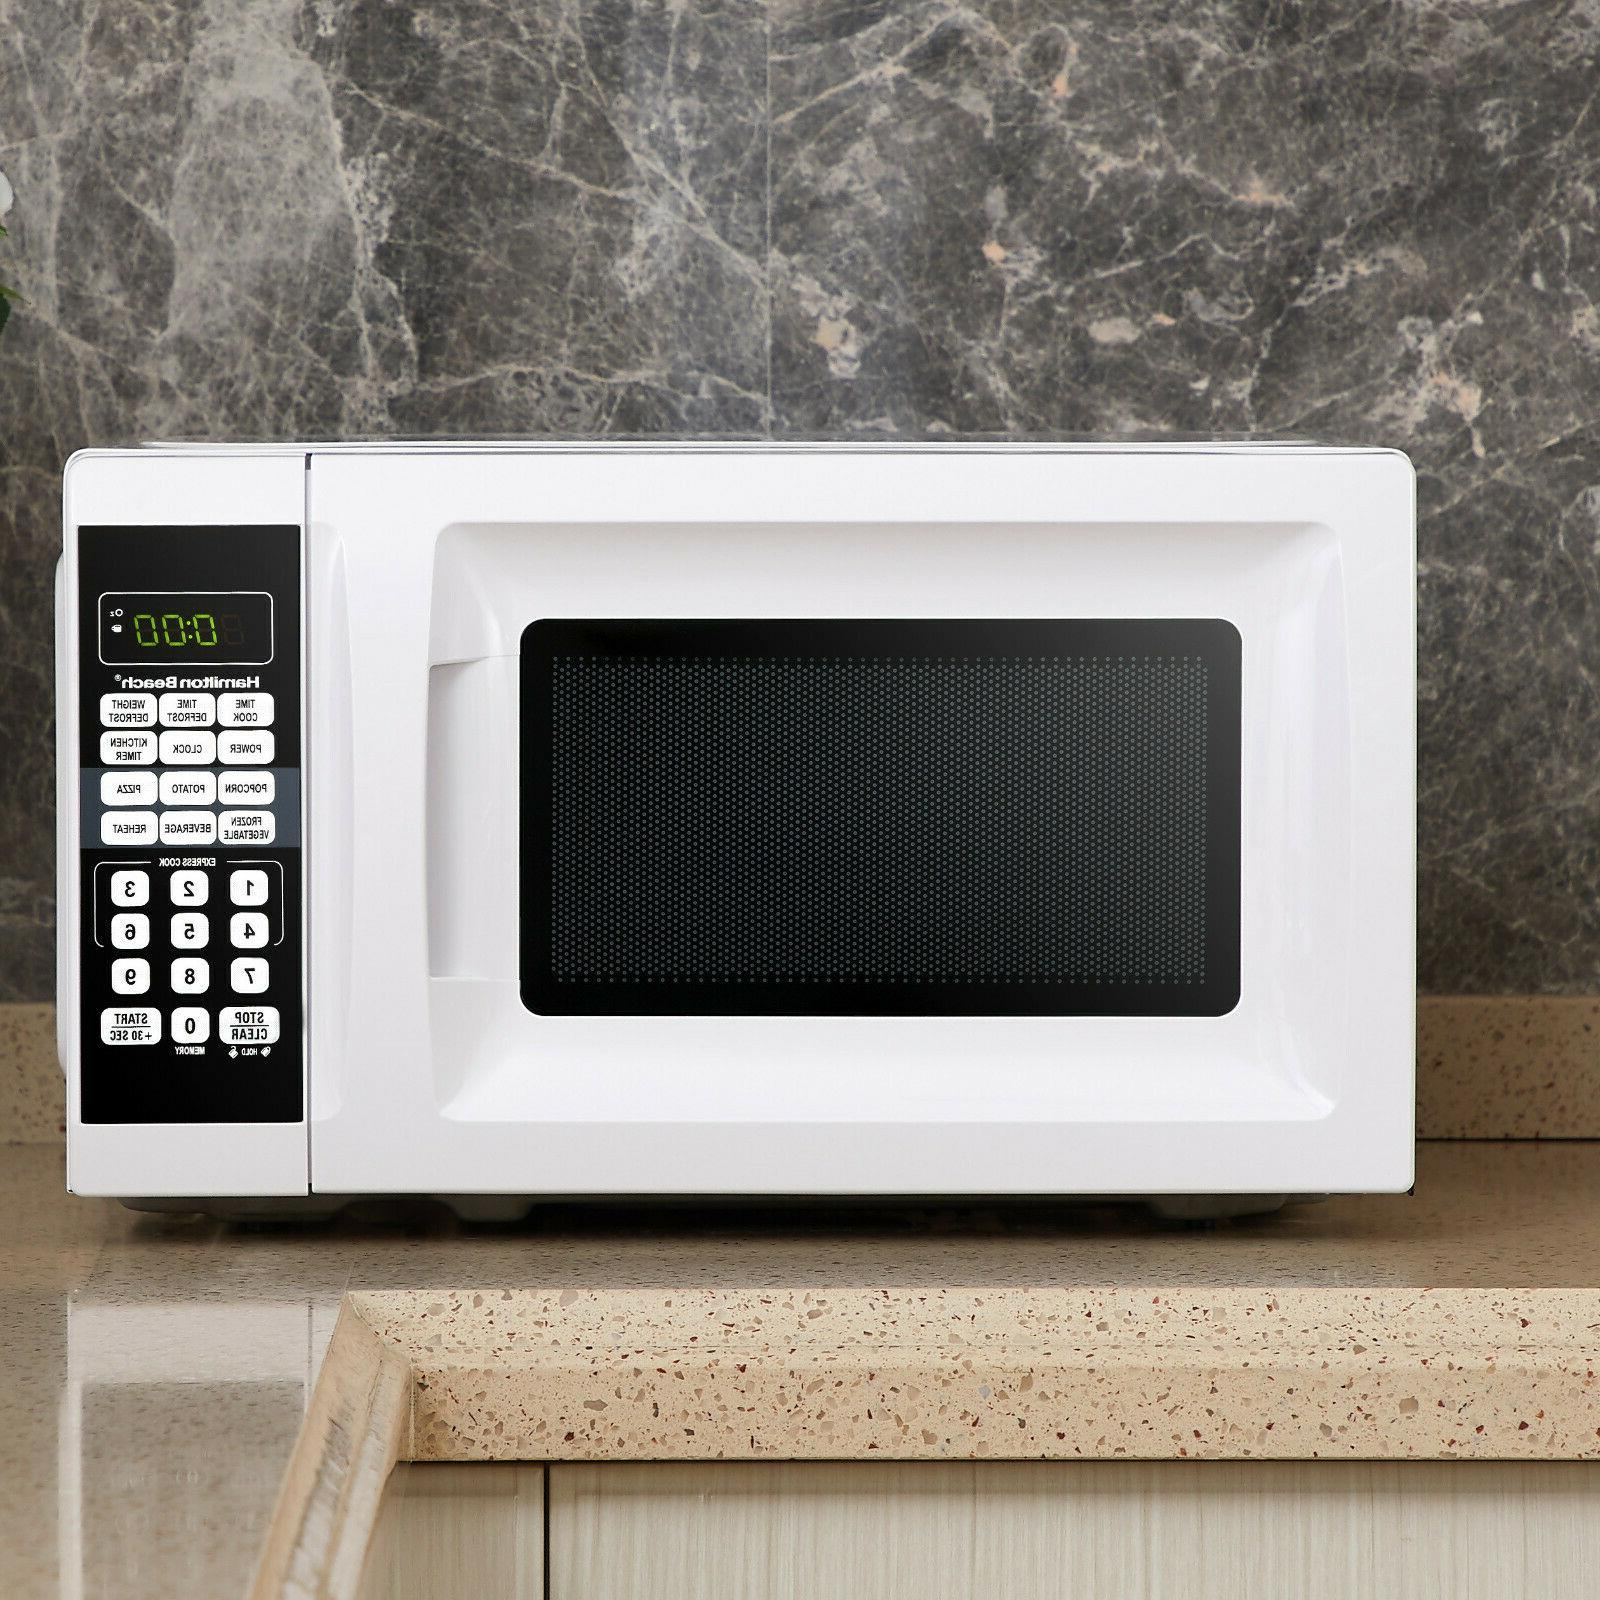 microwave oven actualcolor